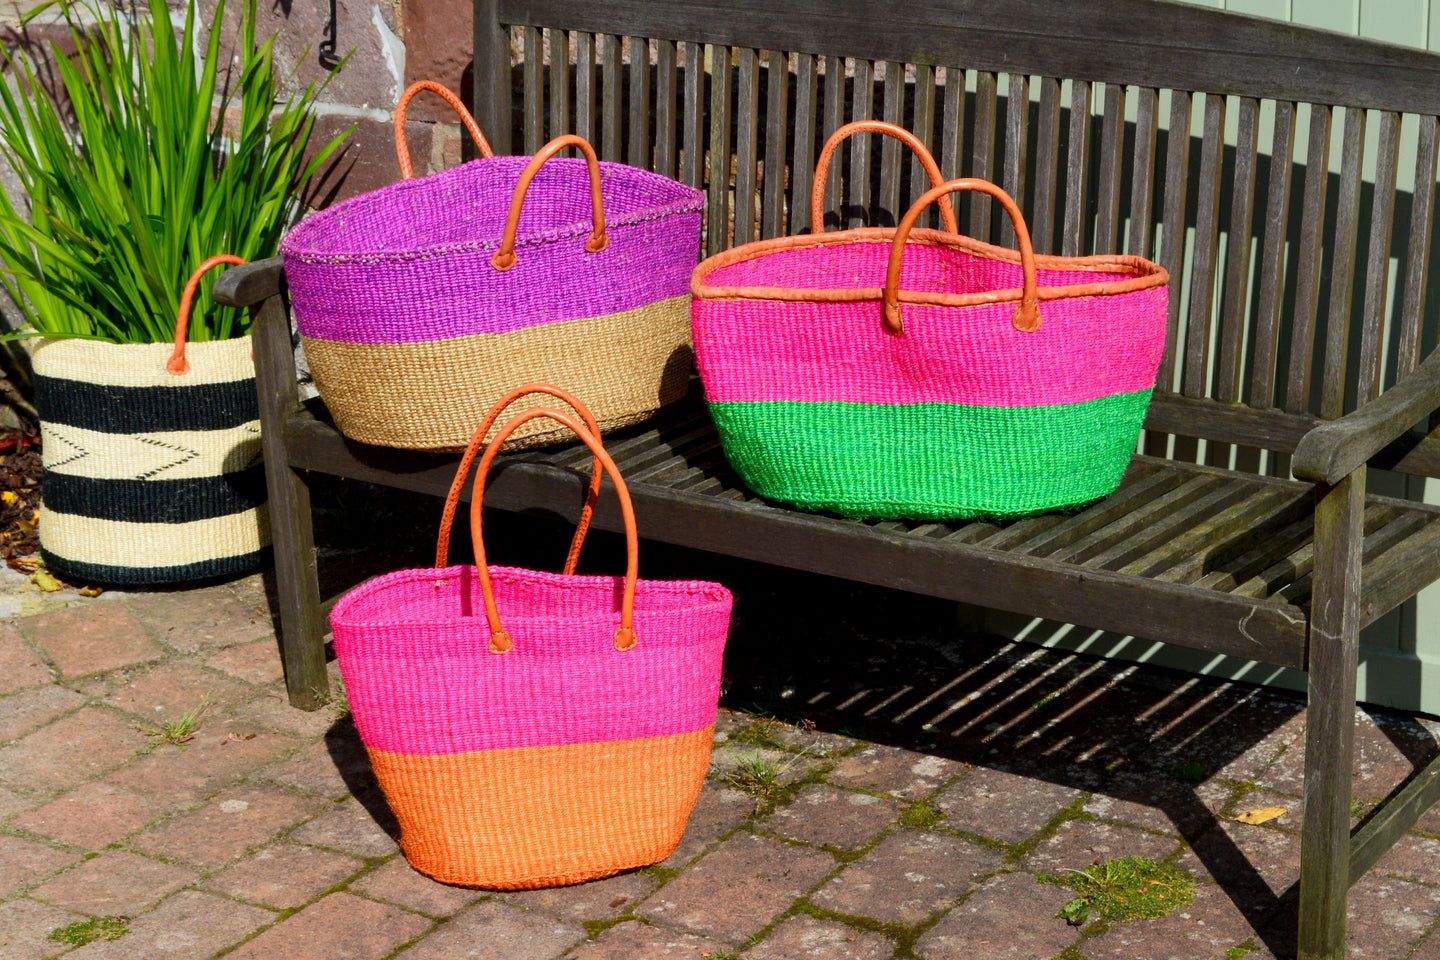 Extra Wide Sisal Baskets, in Pinks